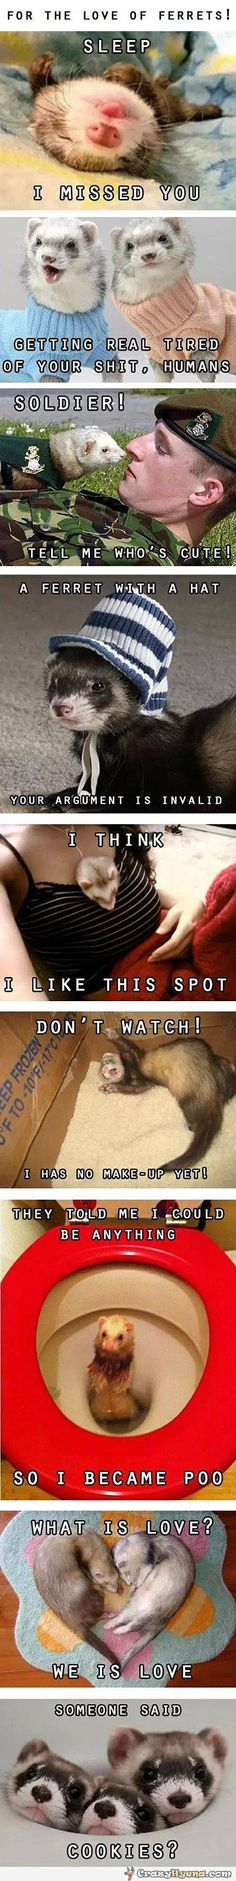 Humorous compilation of cute ferrets pictures with funny captions. Getting real tired of your sh*t humans.